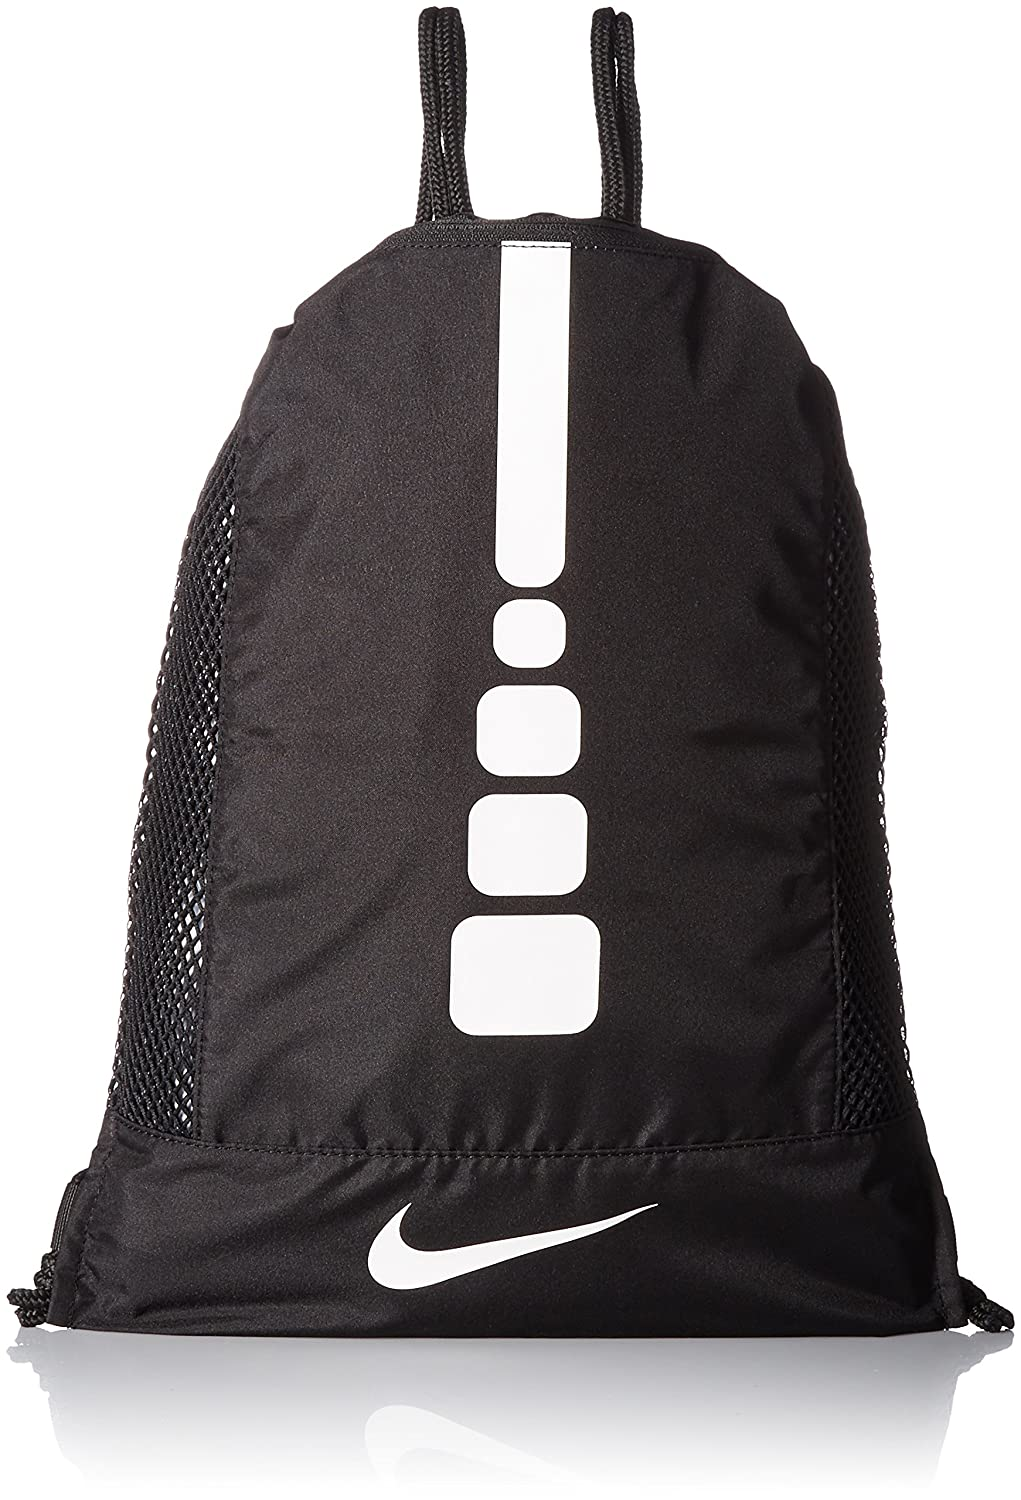 Amazon.com  Nike Men s Hoops Elite Basketball Gym Sack (Black Black White)   Sports   Outdoors 9e9699f6fb